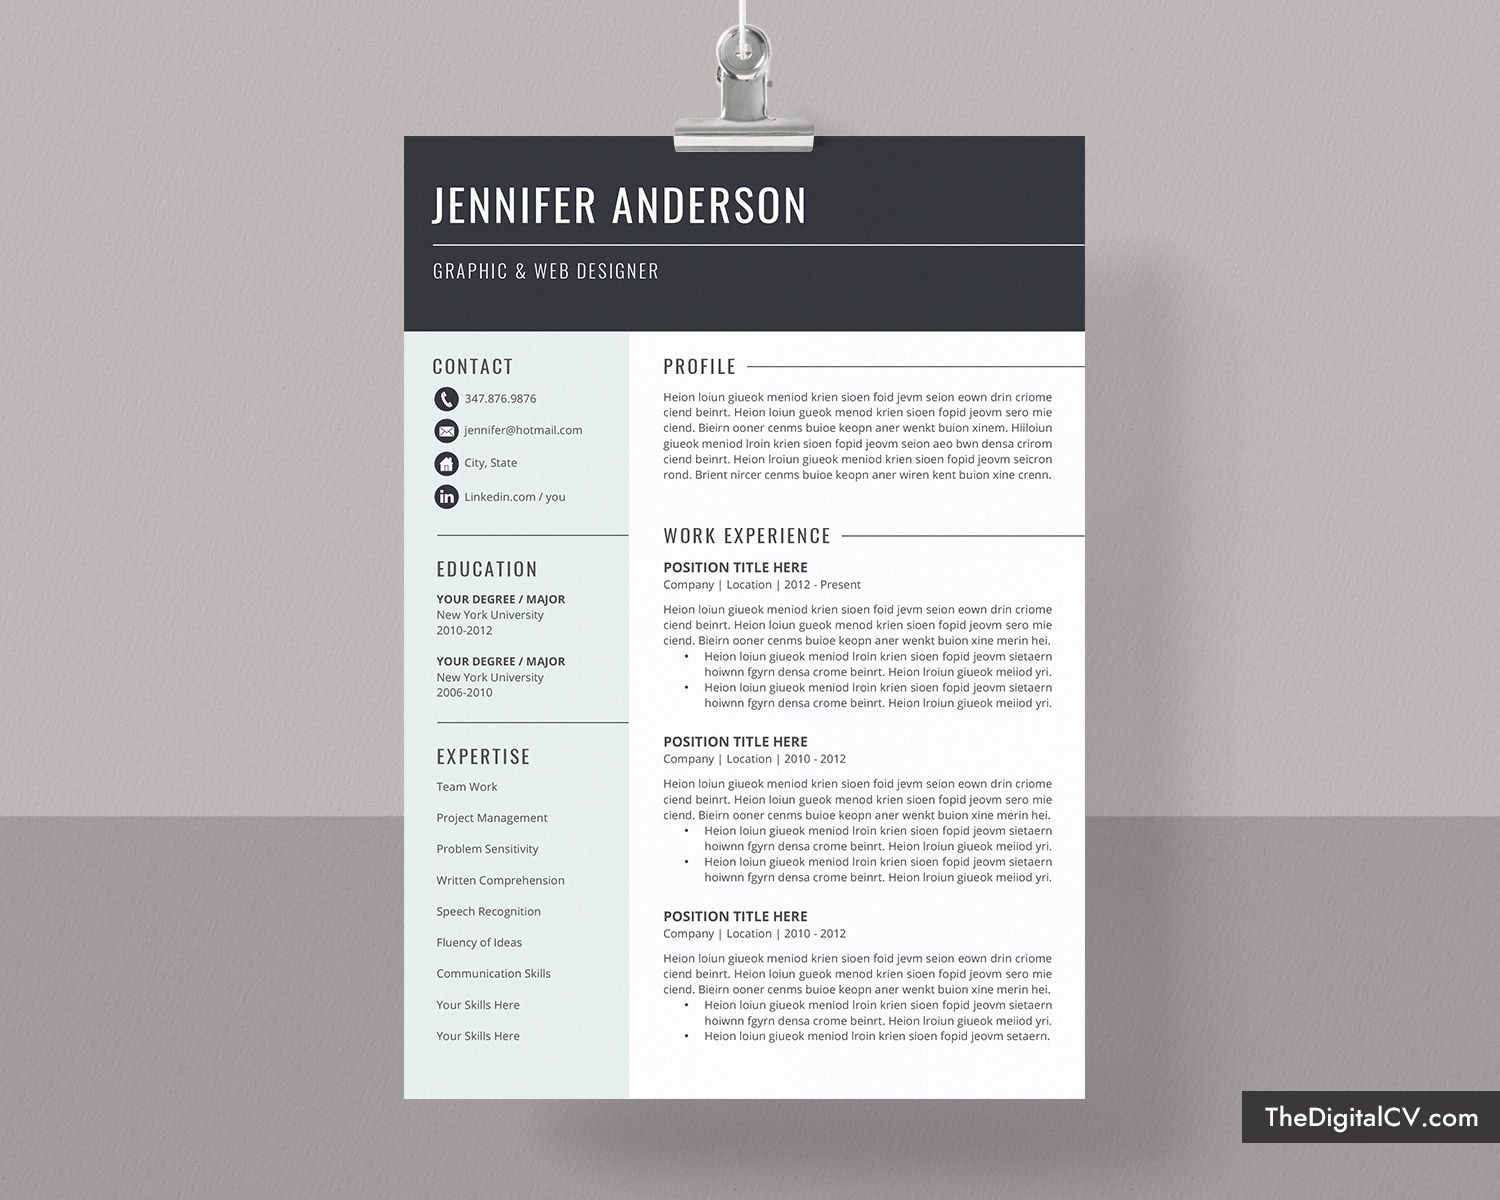 Basic And Simple Resume Template 20192020, Cv Template